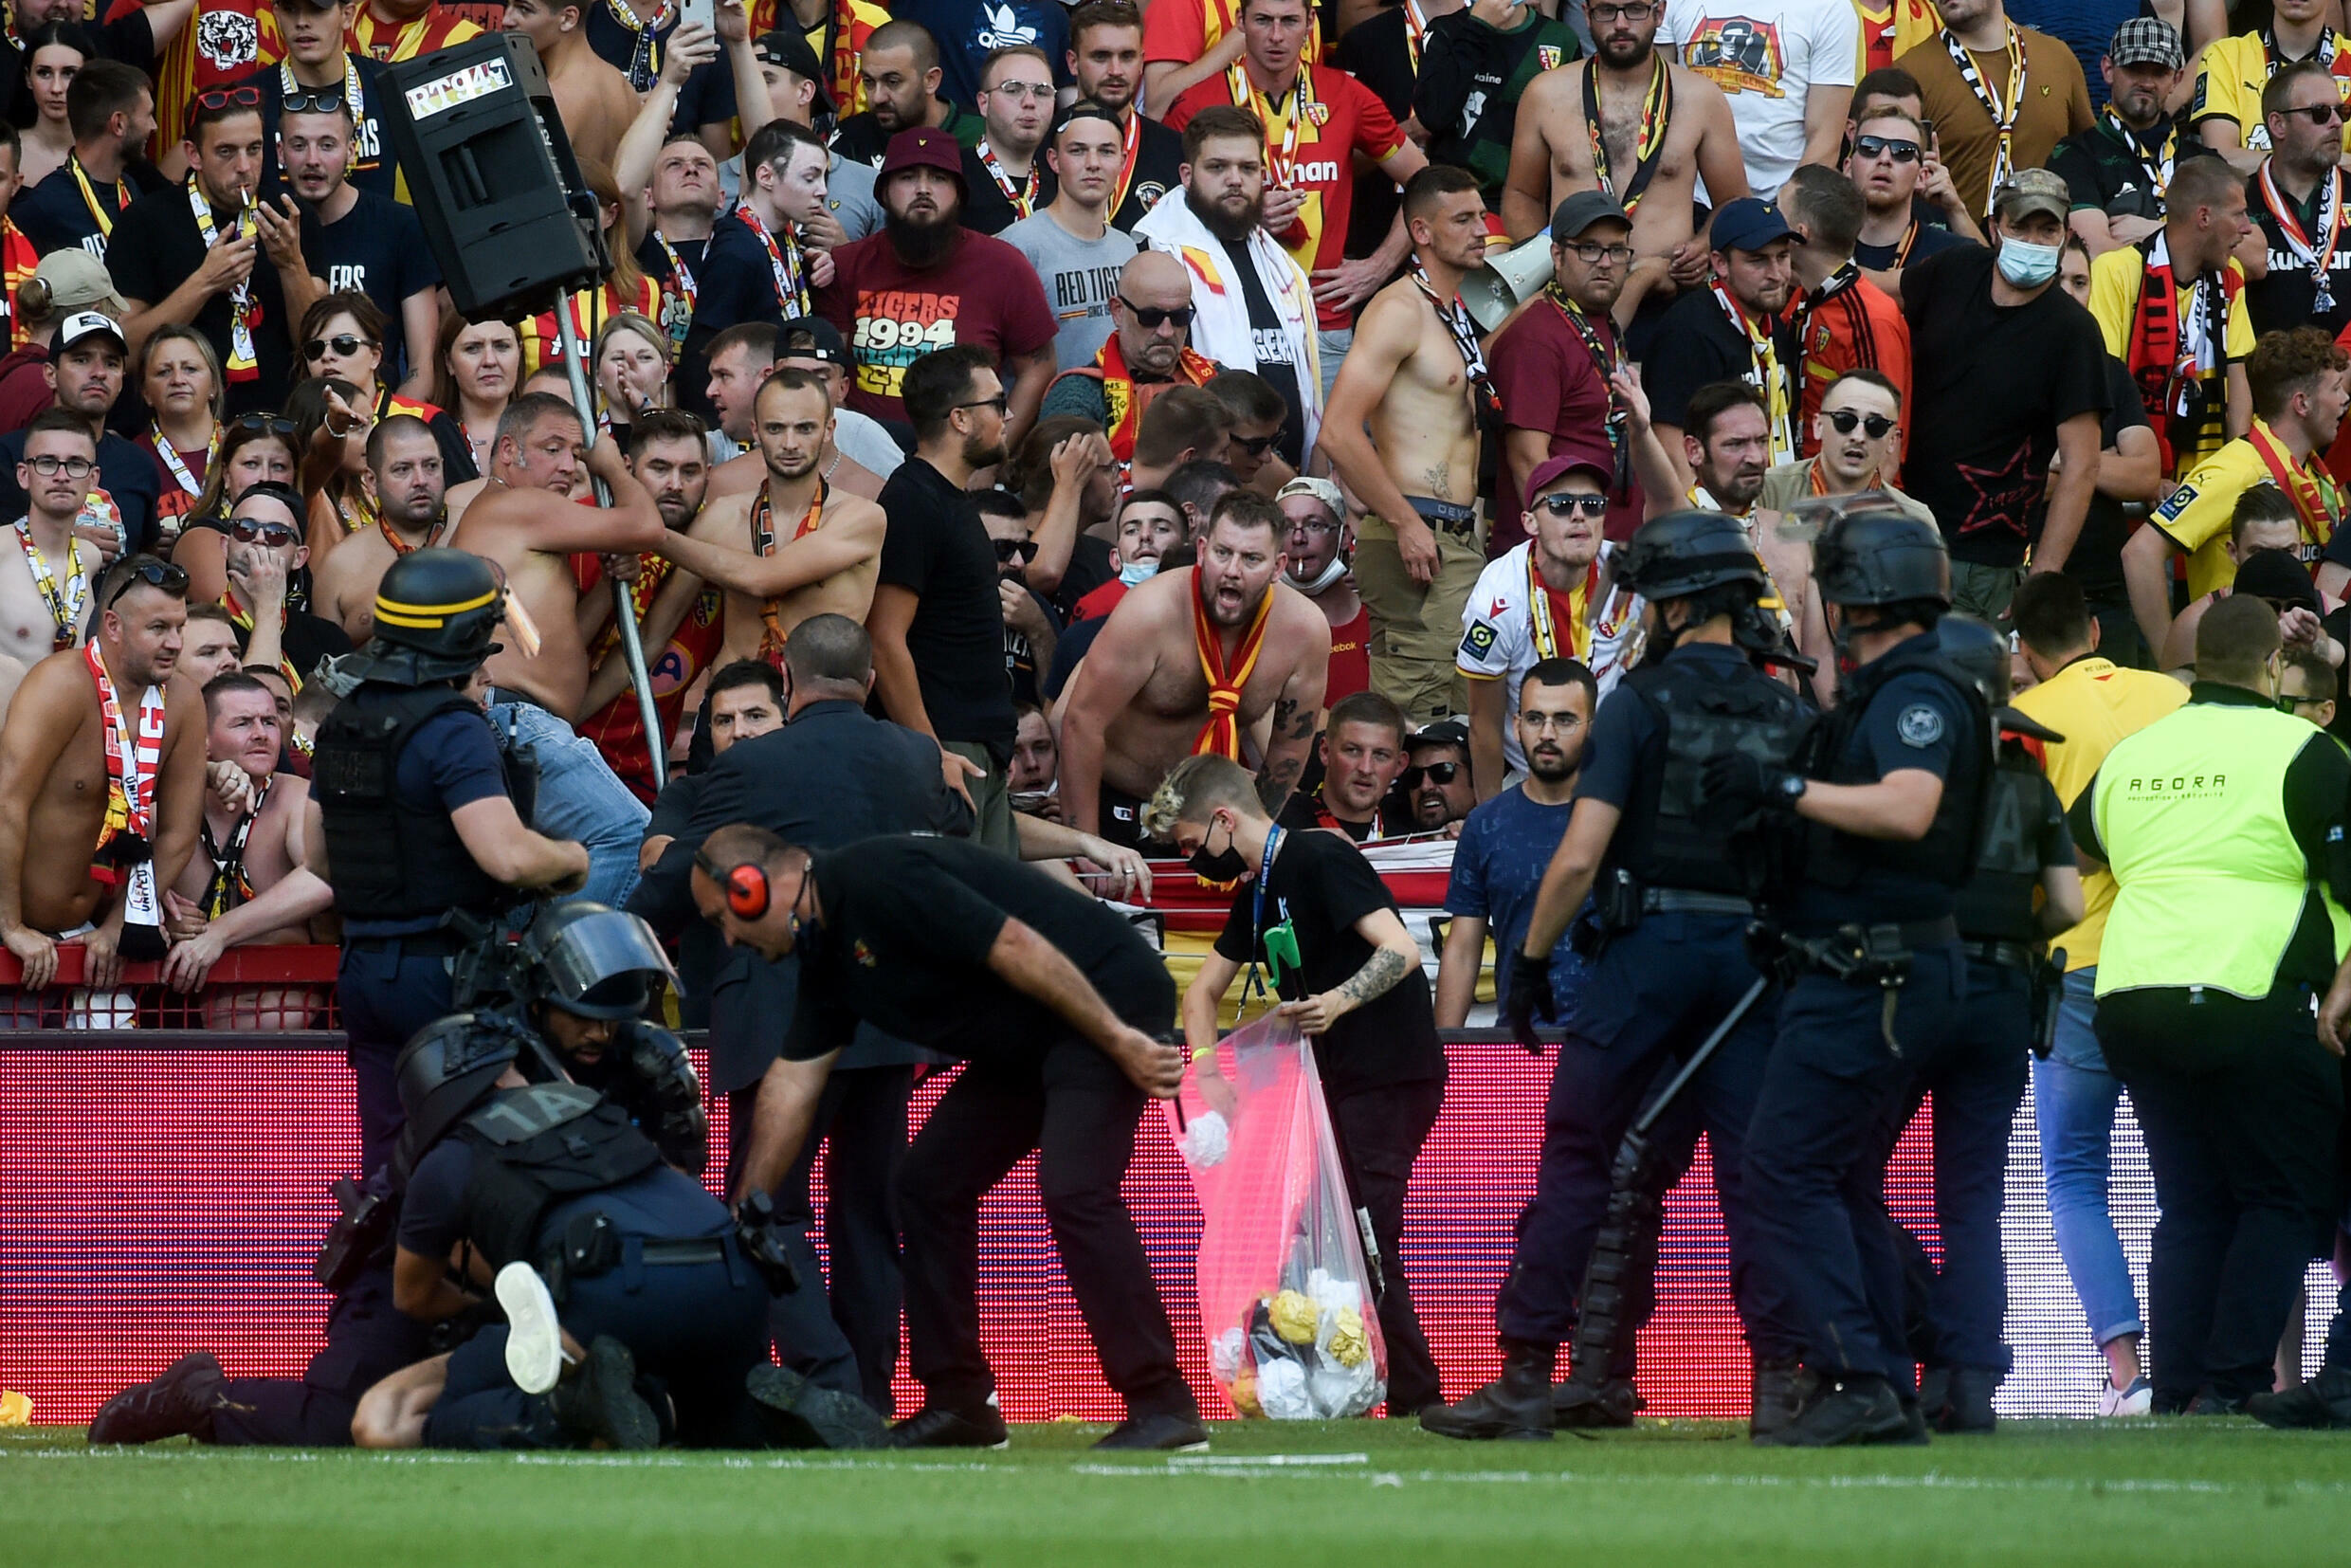 Riot police arrest a man during the trouble in the northern derby between Lens and Lille